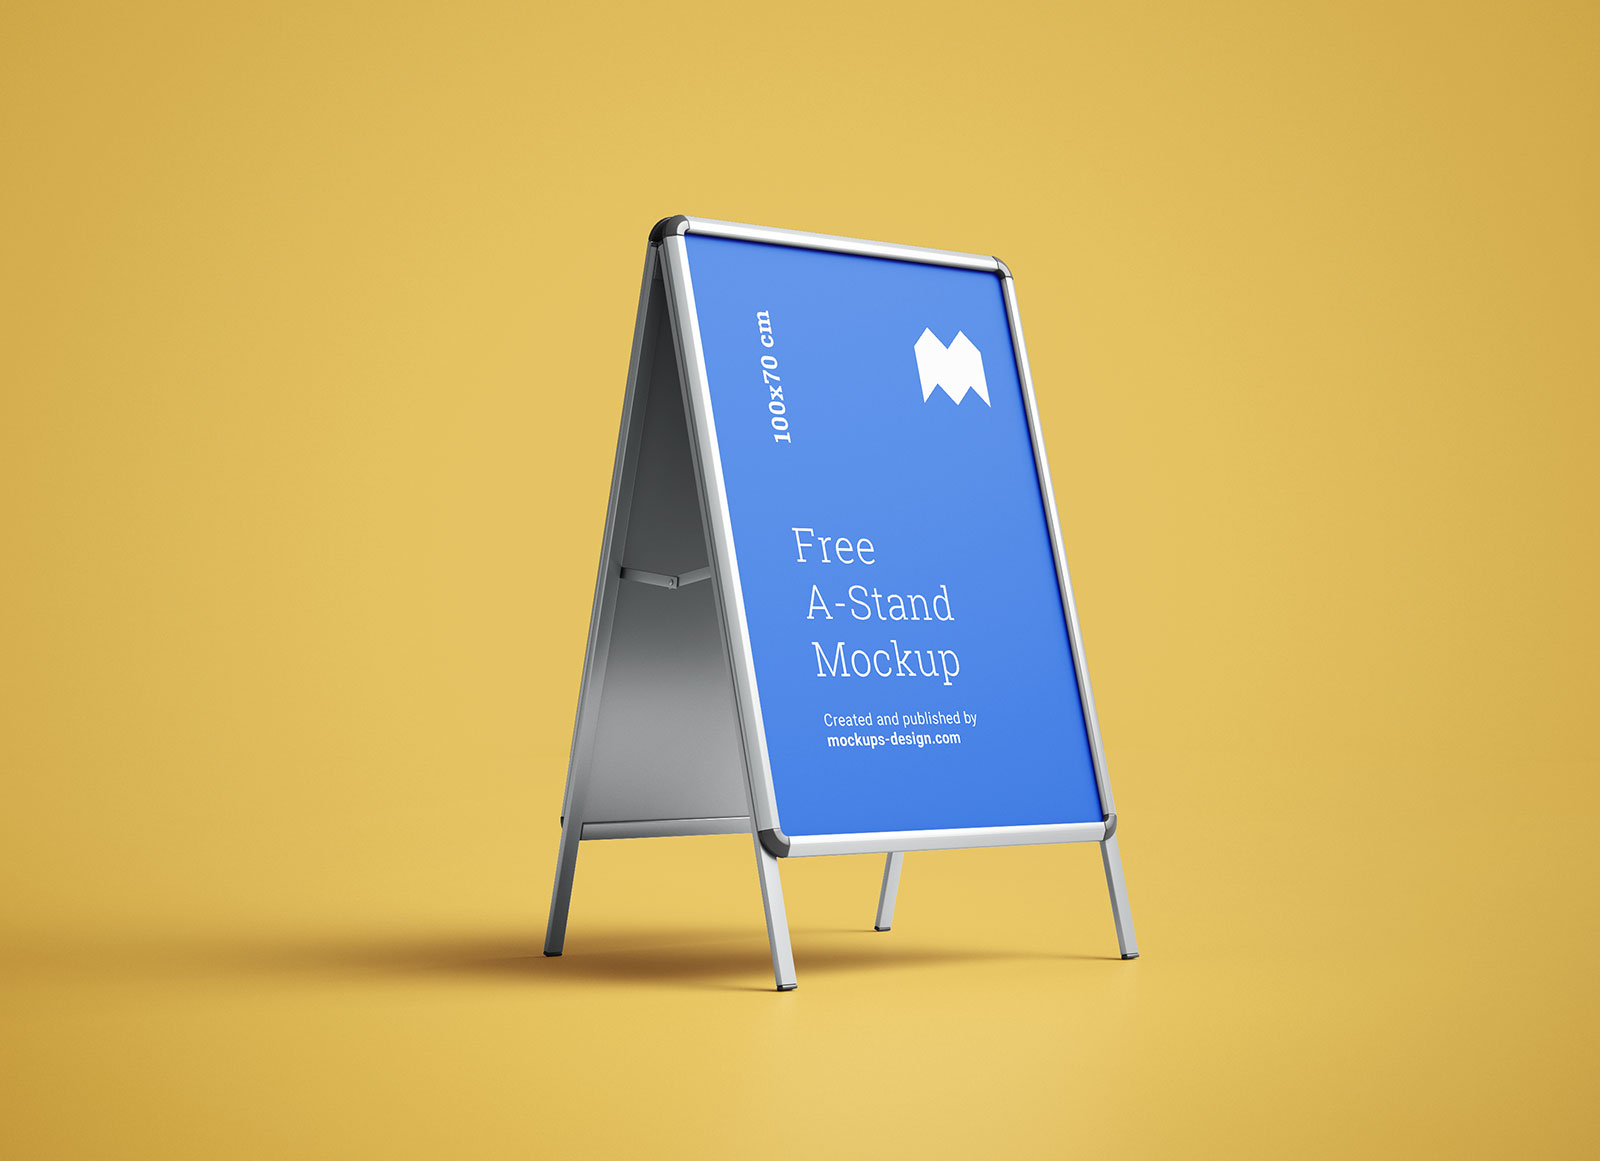 Free-Outdoor-Advertising-A-Stand_Mockup_PSD